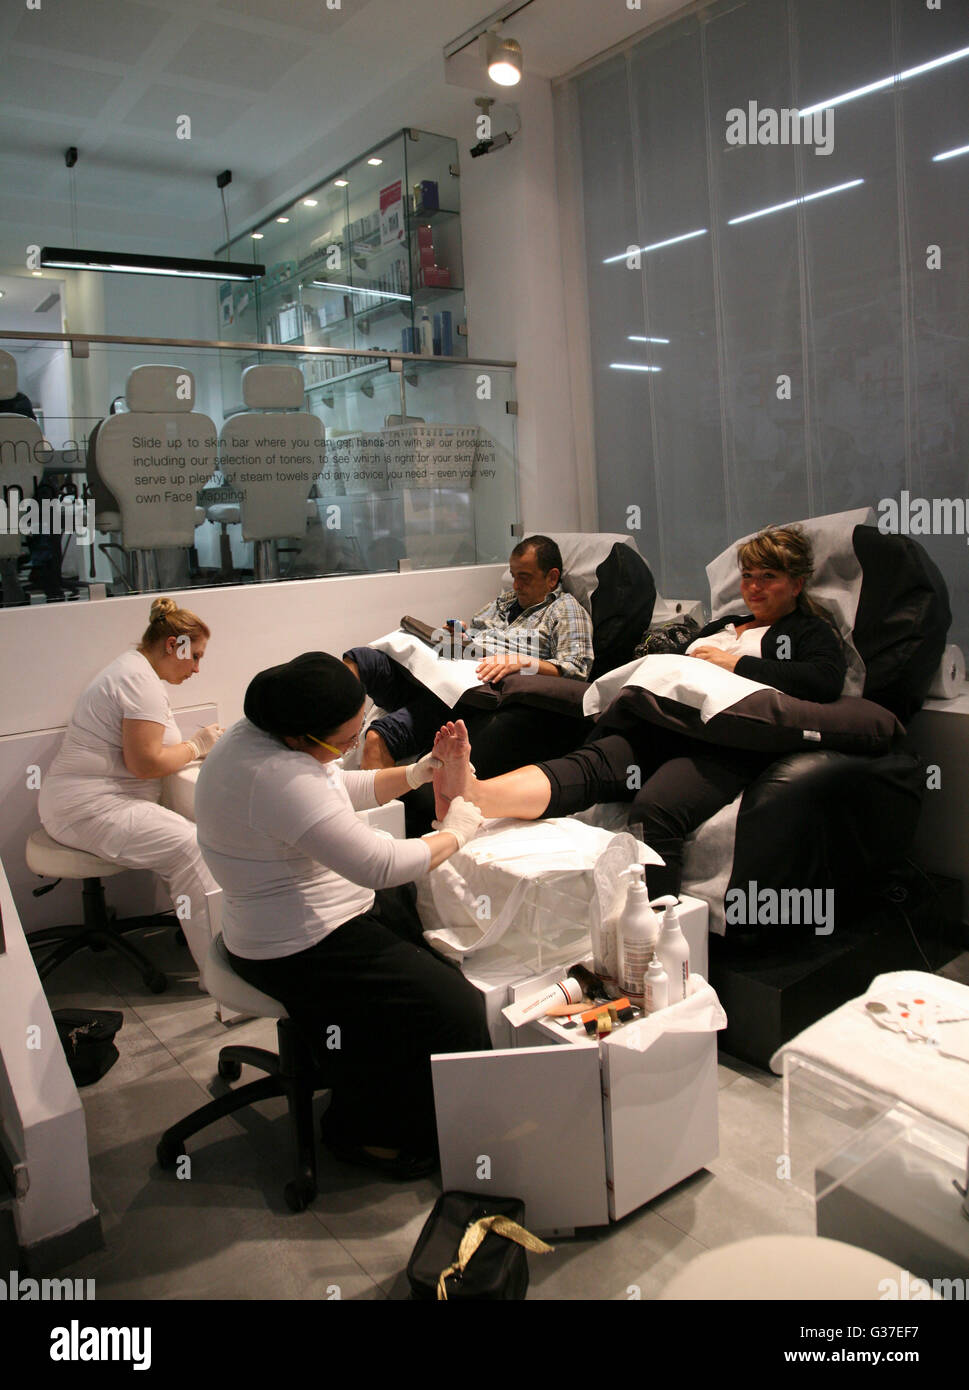 Pedicure Salon Israel Tel Aviv Beauty Salon Pedicure Treatments Stock Photo